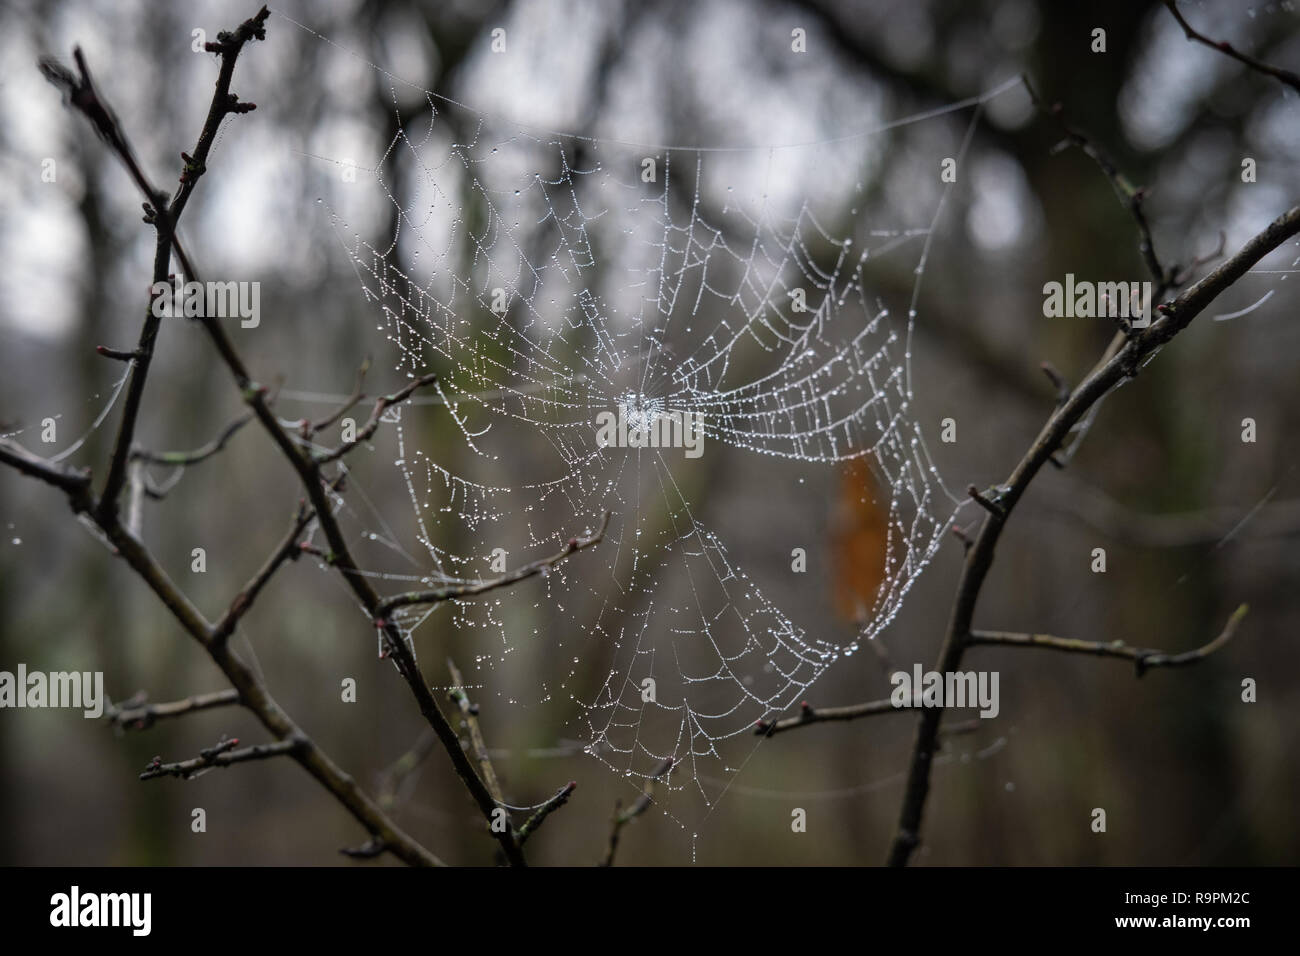 Spider web with dew in the woods - Stock Image